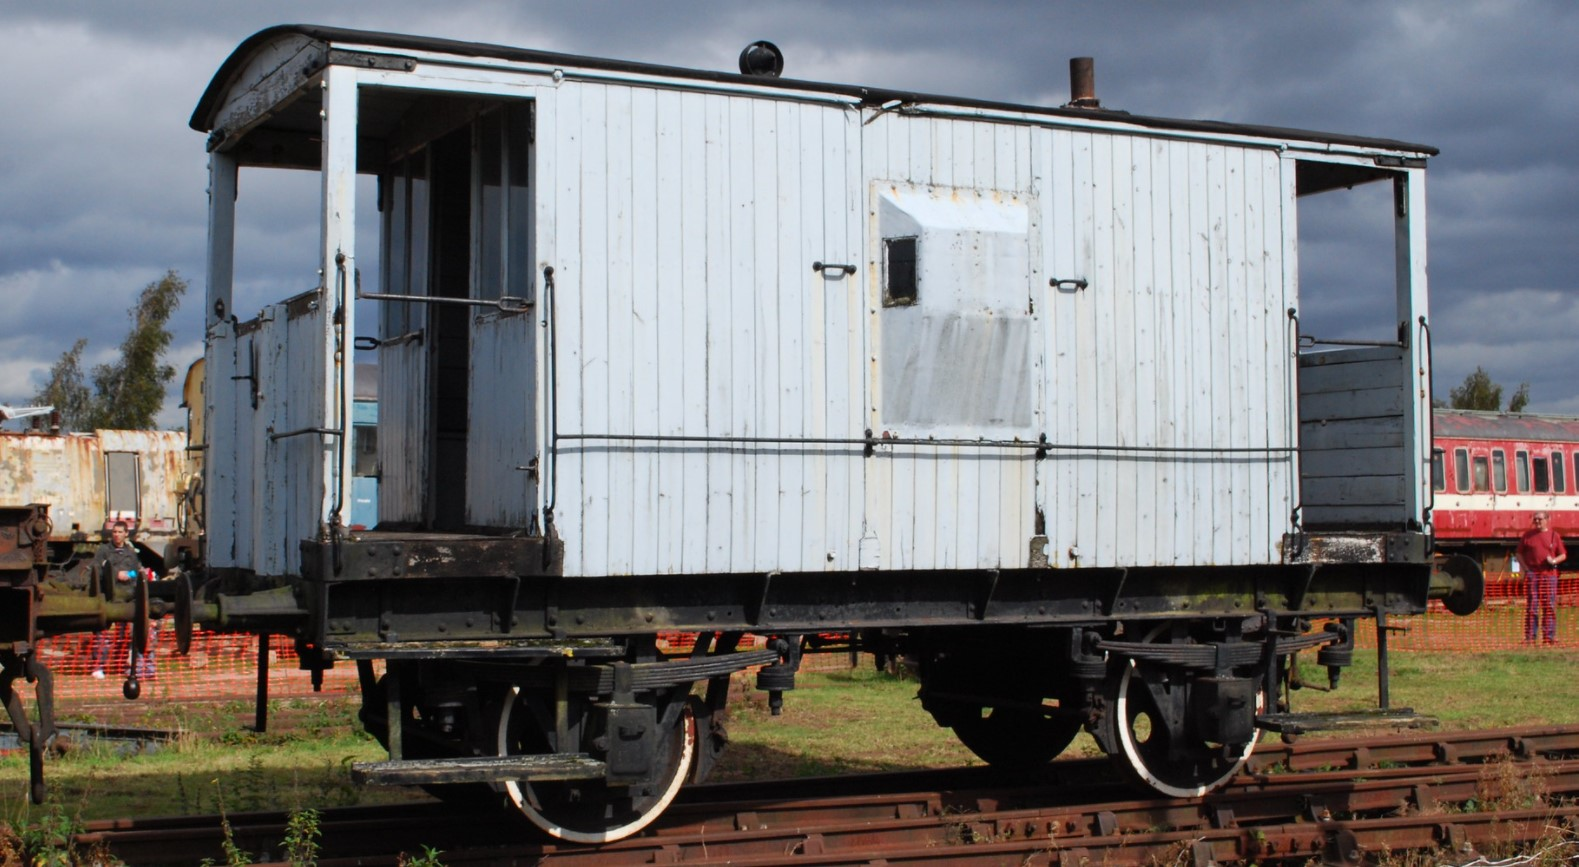 E226125 at the Electric Railway Museum, Coventry in September 2011. ©Hugh Llewelyn